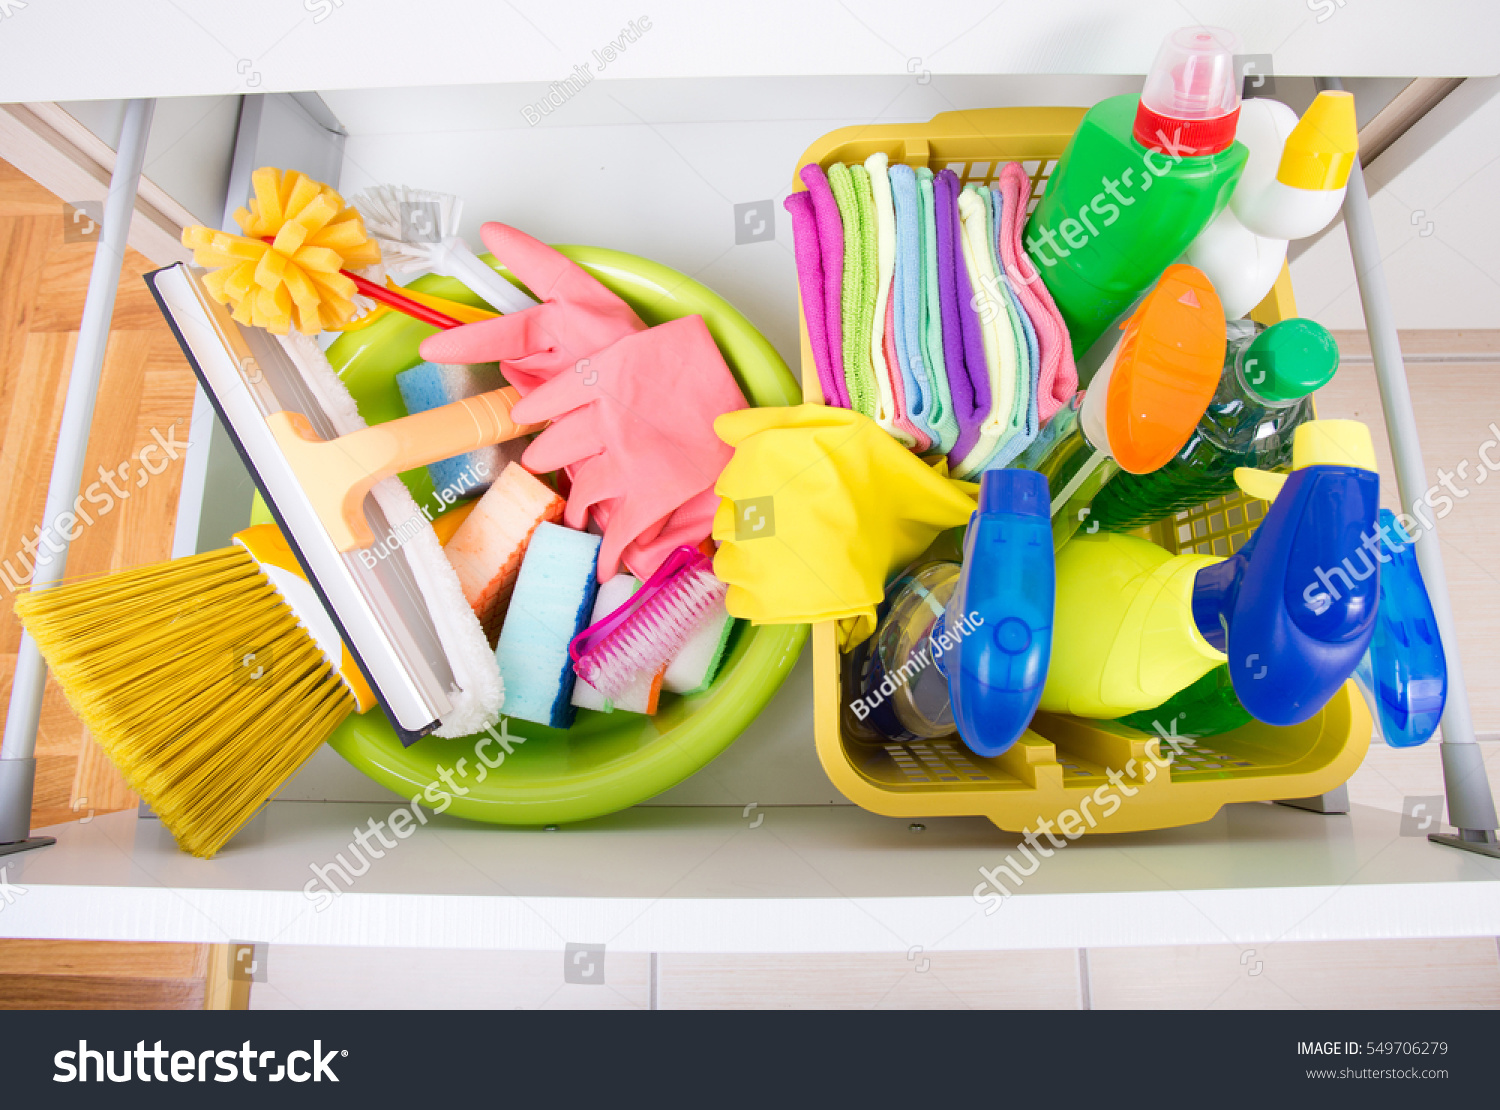 Top view cleaning supplies equipment stored stock foto for Best cleaning products for kitchen cabinets